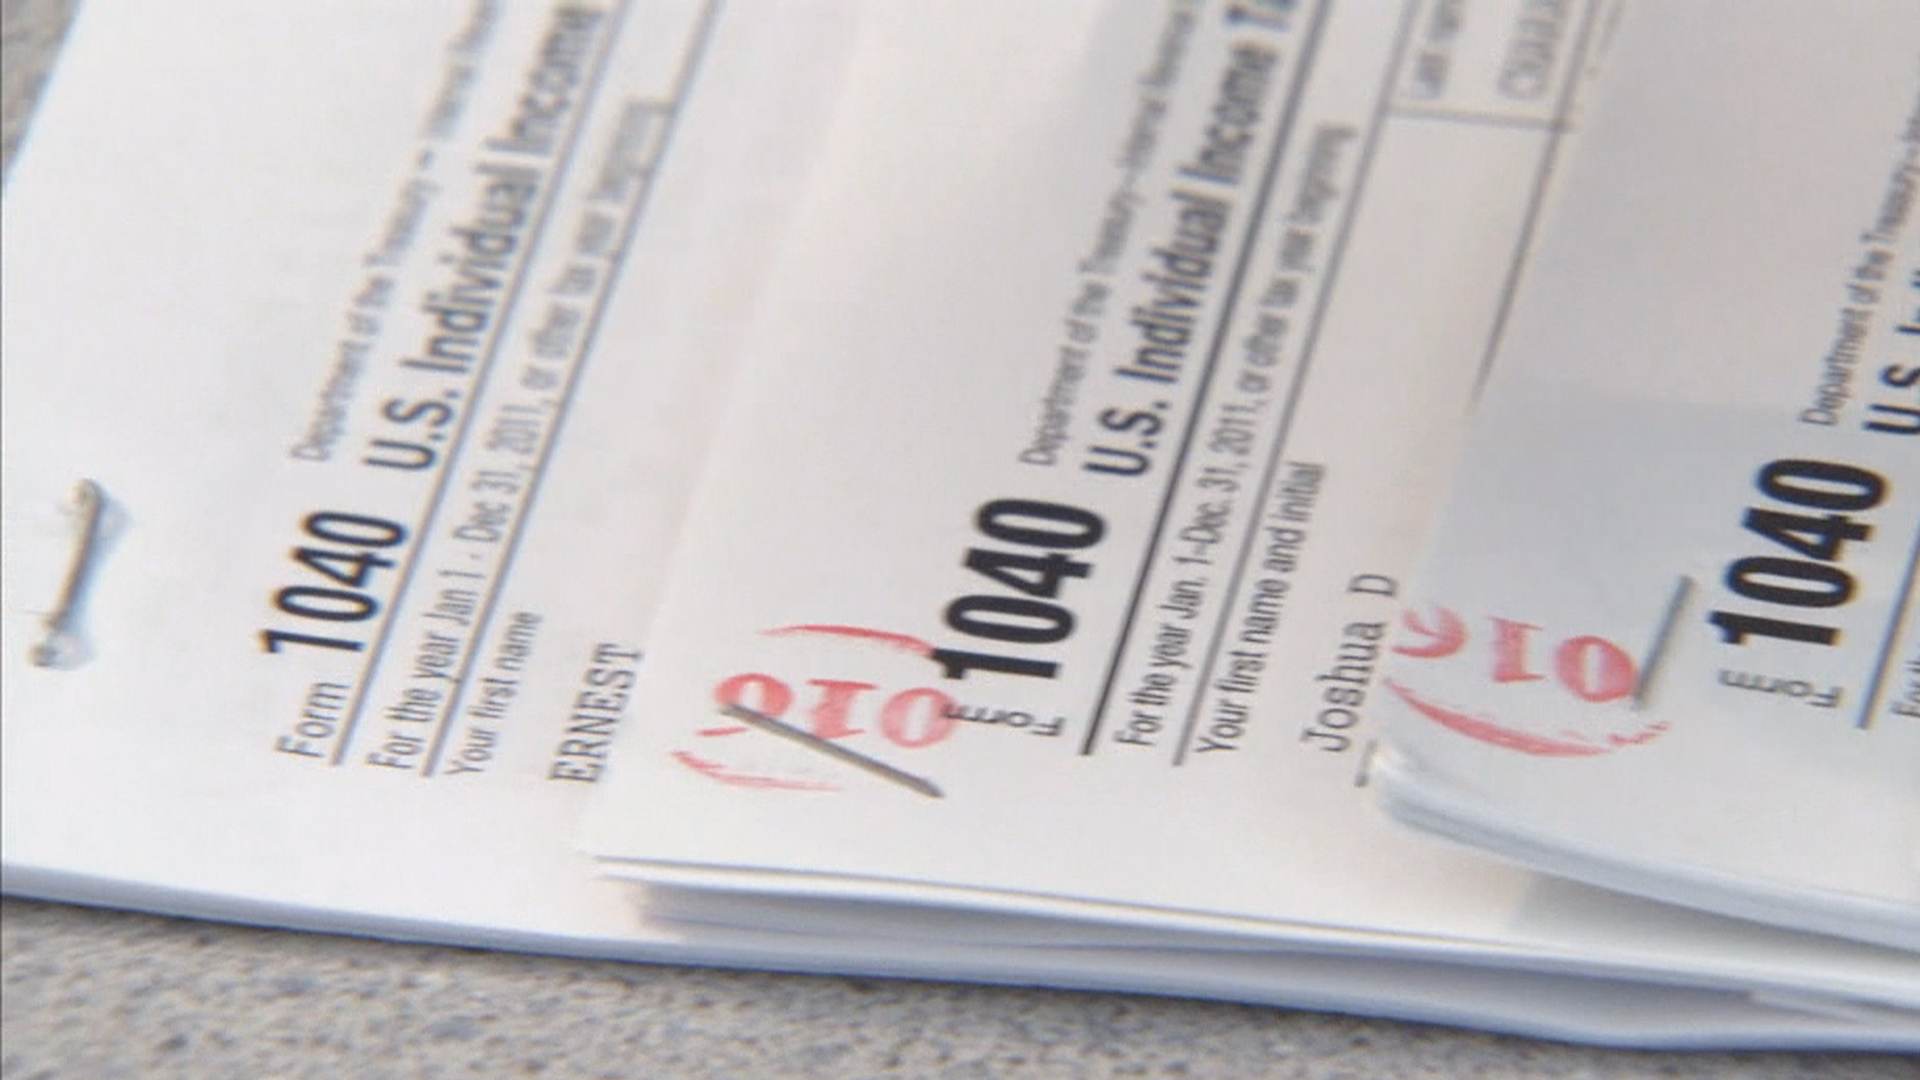 Irs Says Thieves Stole Tax Info From 100000 Taxpayers